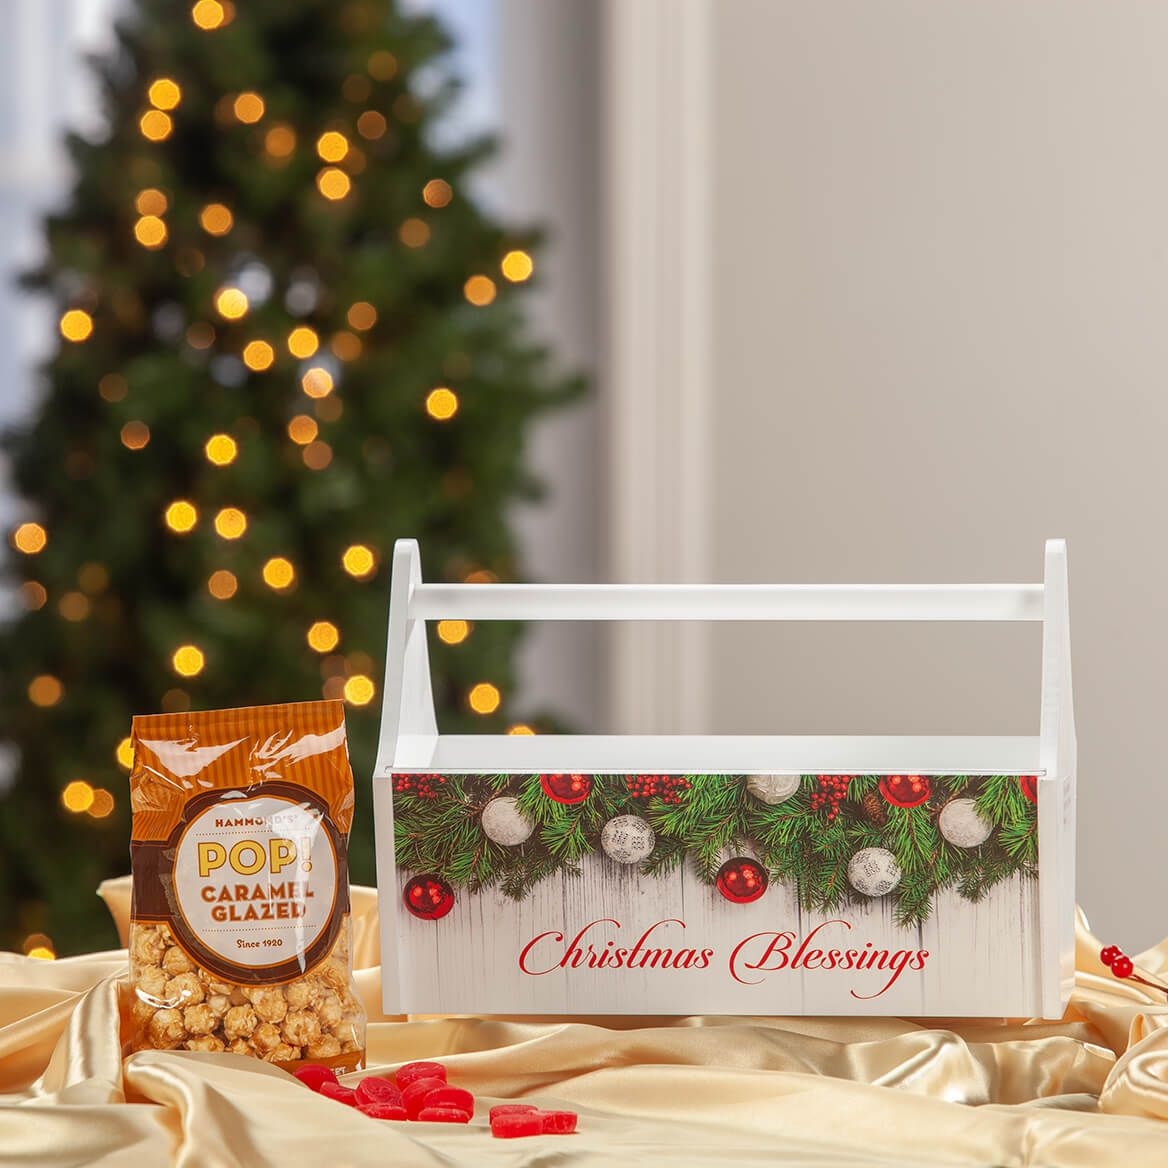 Garlands Christmas Blessings Trough Caddy-371426